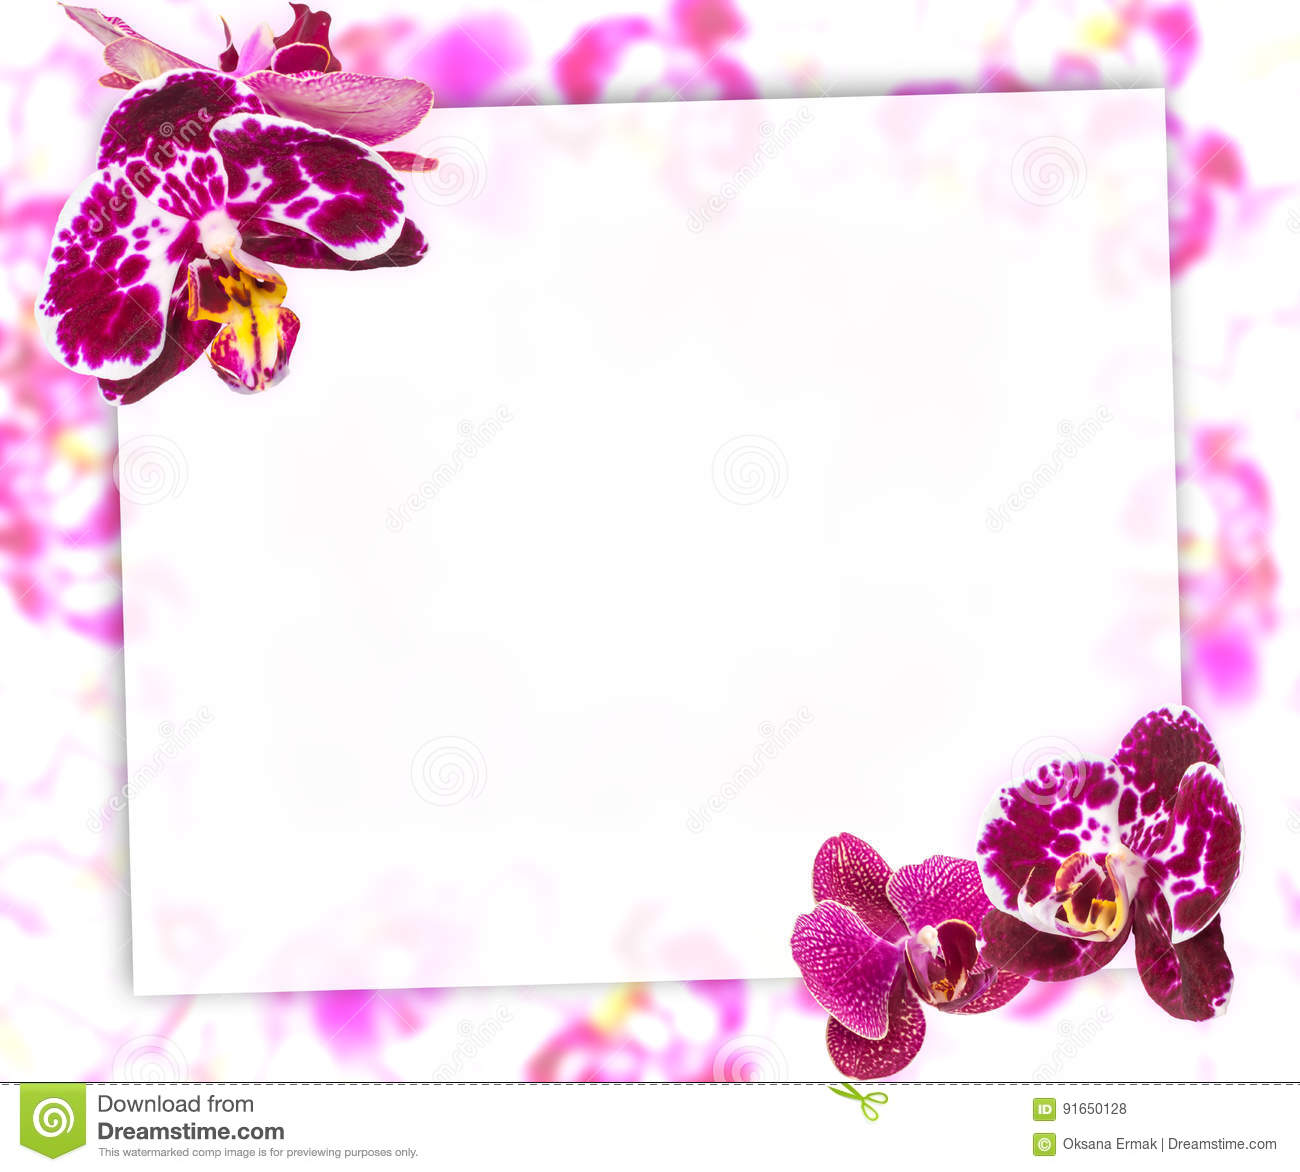 Beautiful pink orchids border for greeting card or lovely flower beautiful pink and violet orchids border for greeting card lovely flower frame with blank space for text m4hsunfo